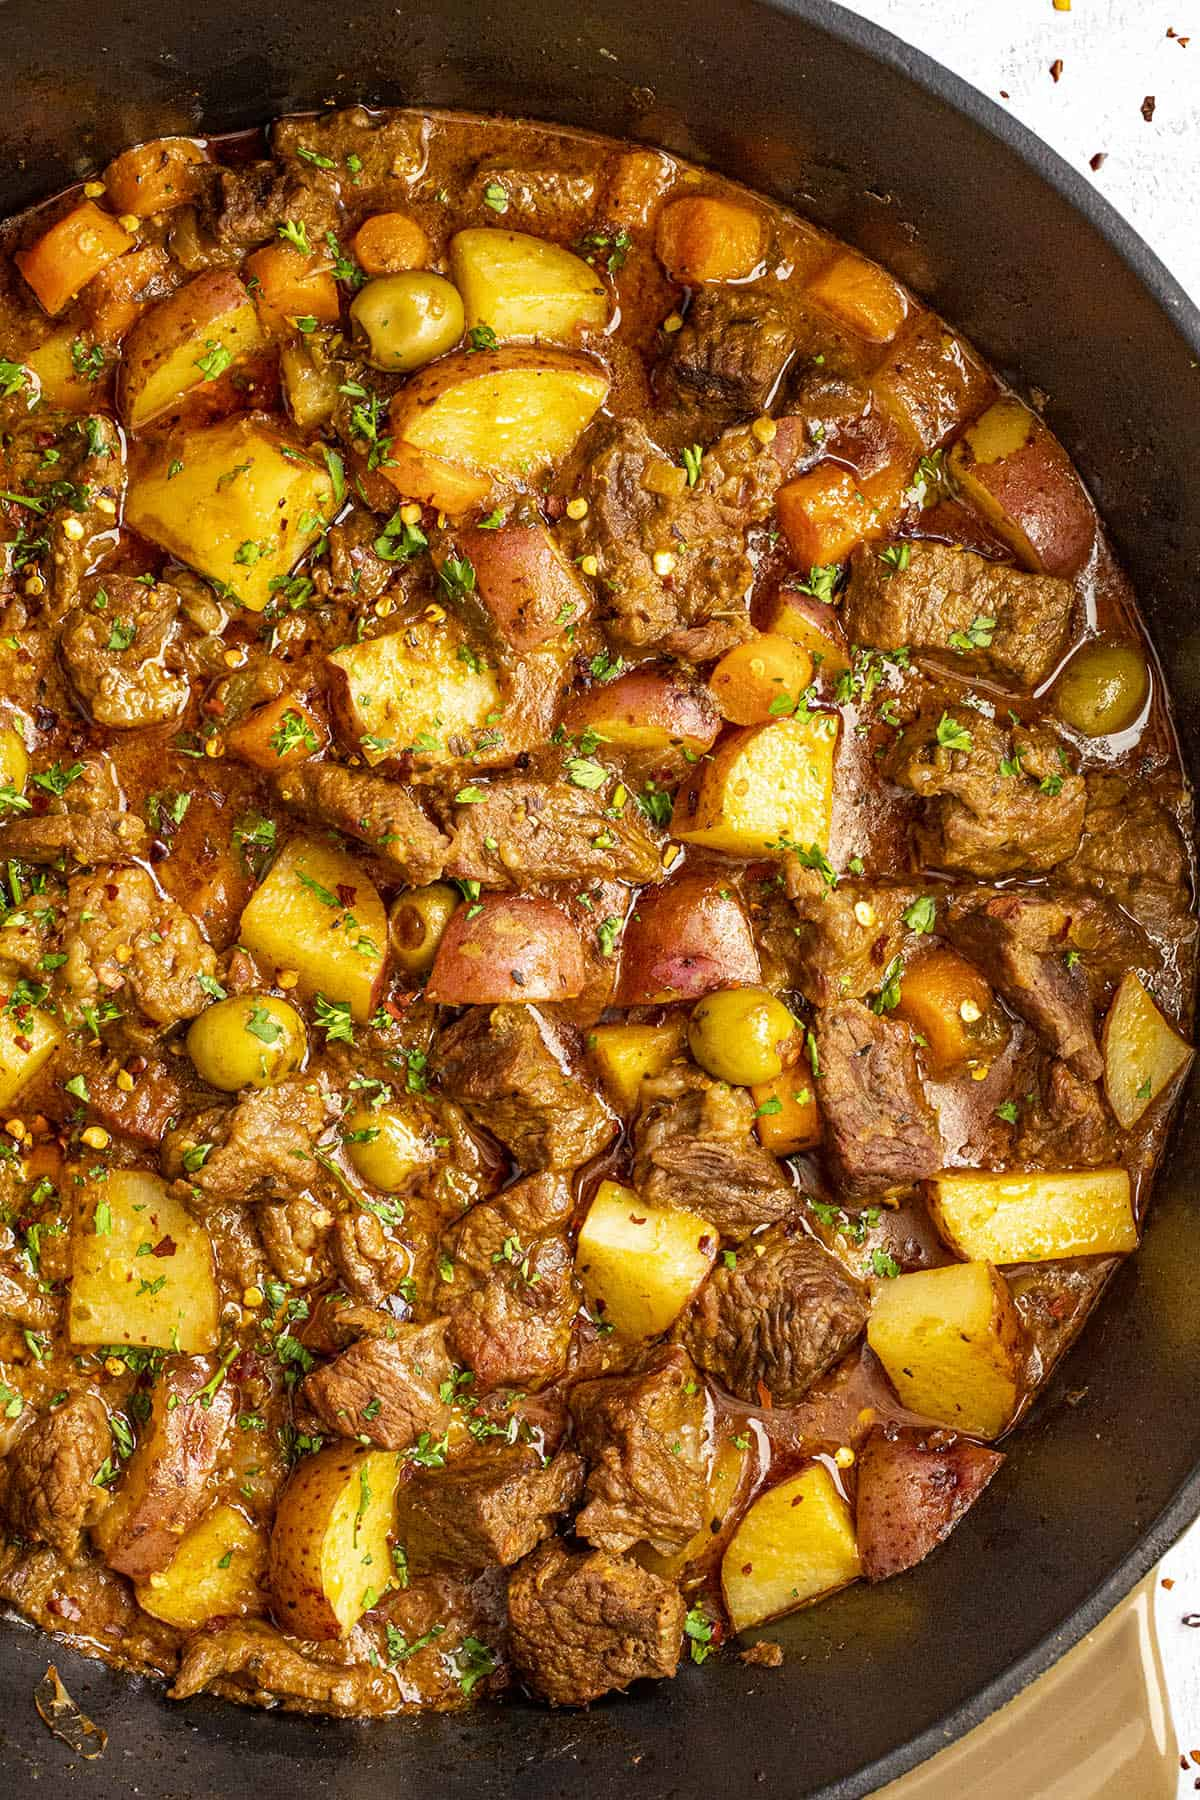 Carne guisada (beef stew) in a pot with garnish